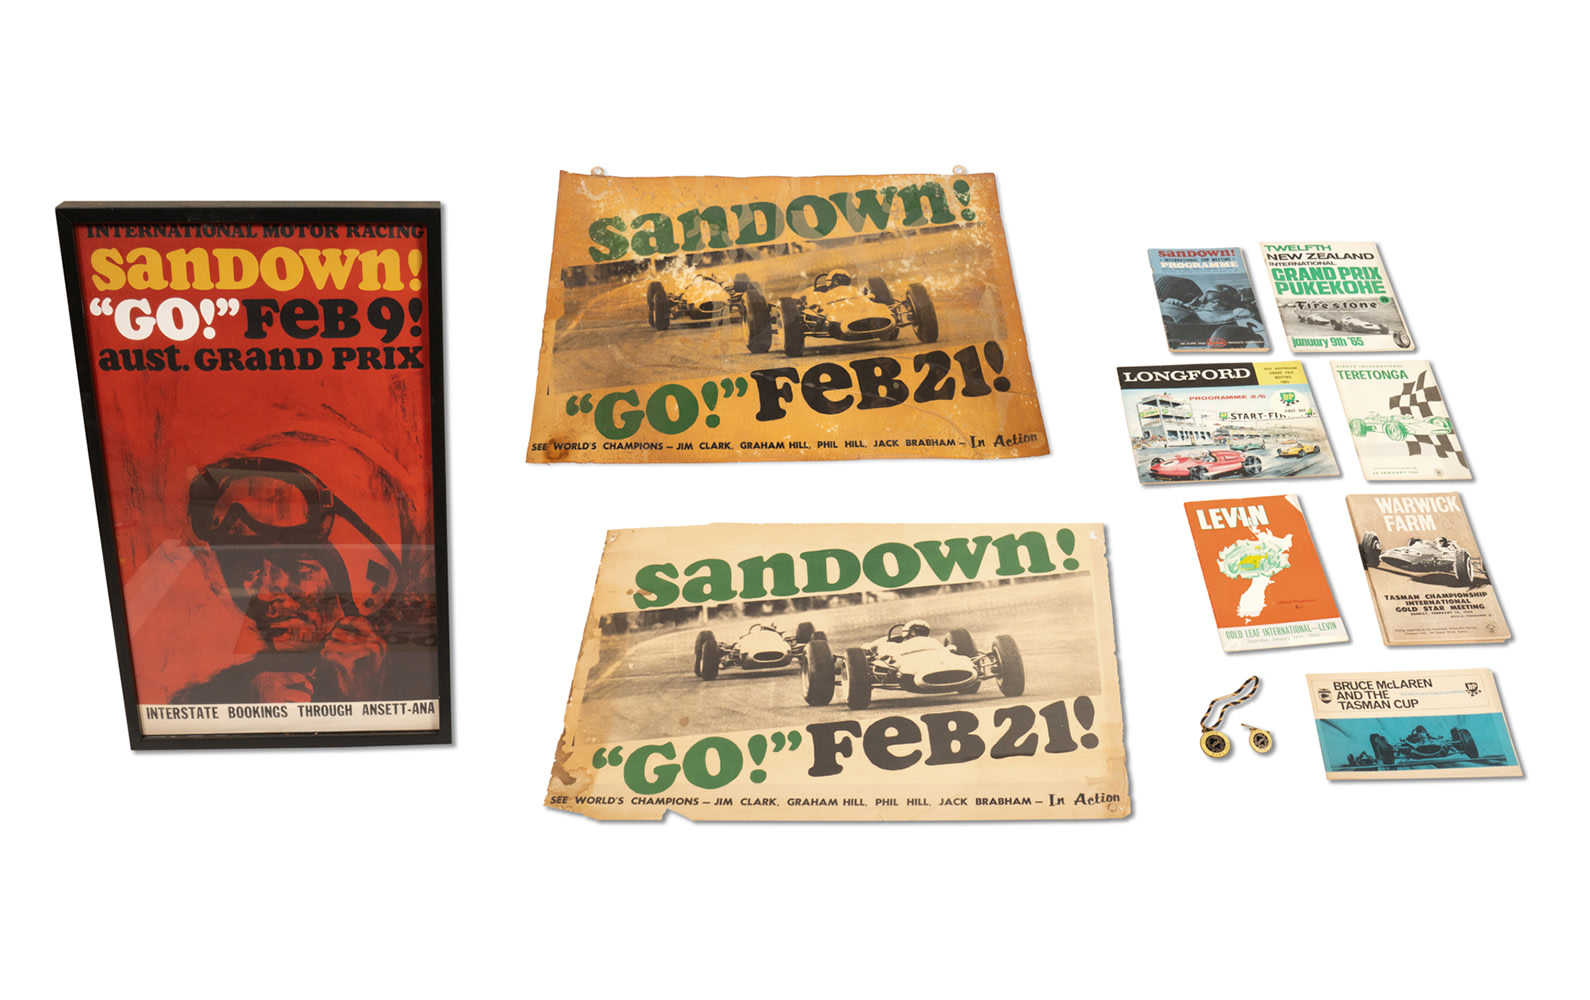 1965 Tasman Cup Race Programs, Literature, and Sandown Posters, Framed and Unframed